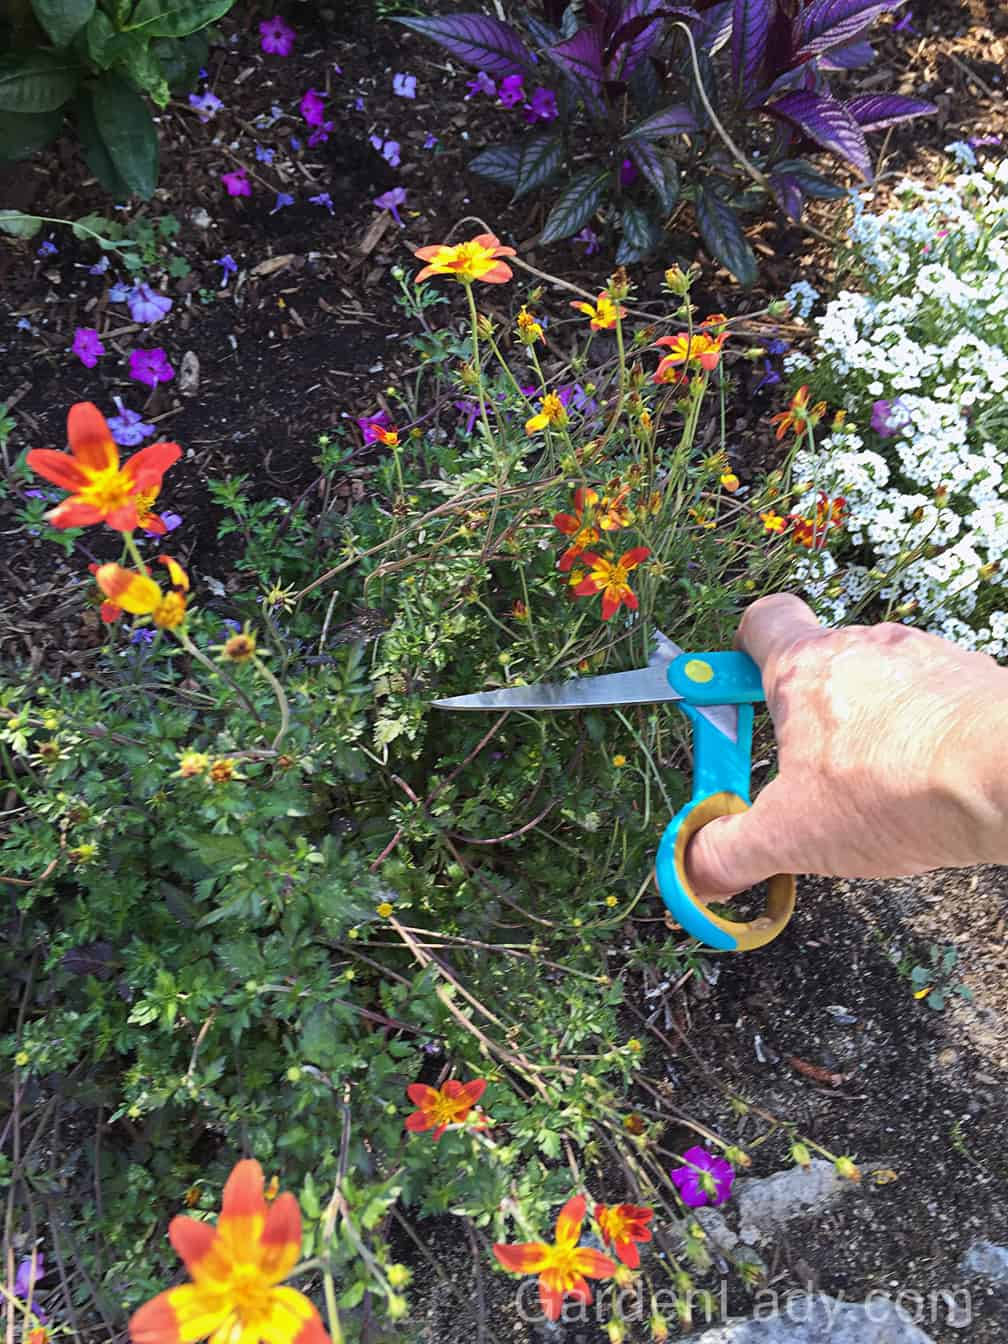 Even plants that don't require deadheading, like this Bidens Campfire FIreburst, flower better for the rest of the summer if they are given a haircut to cut off spent blooms. This plant slowed its flowering in our hot, dry July weather so a trim, and a good soaking, will help it to rebound.